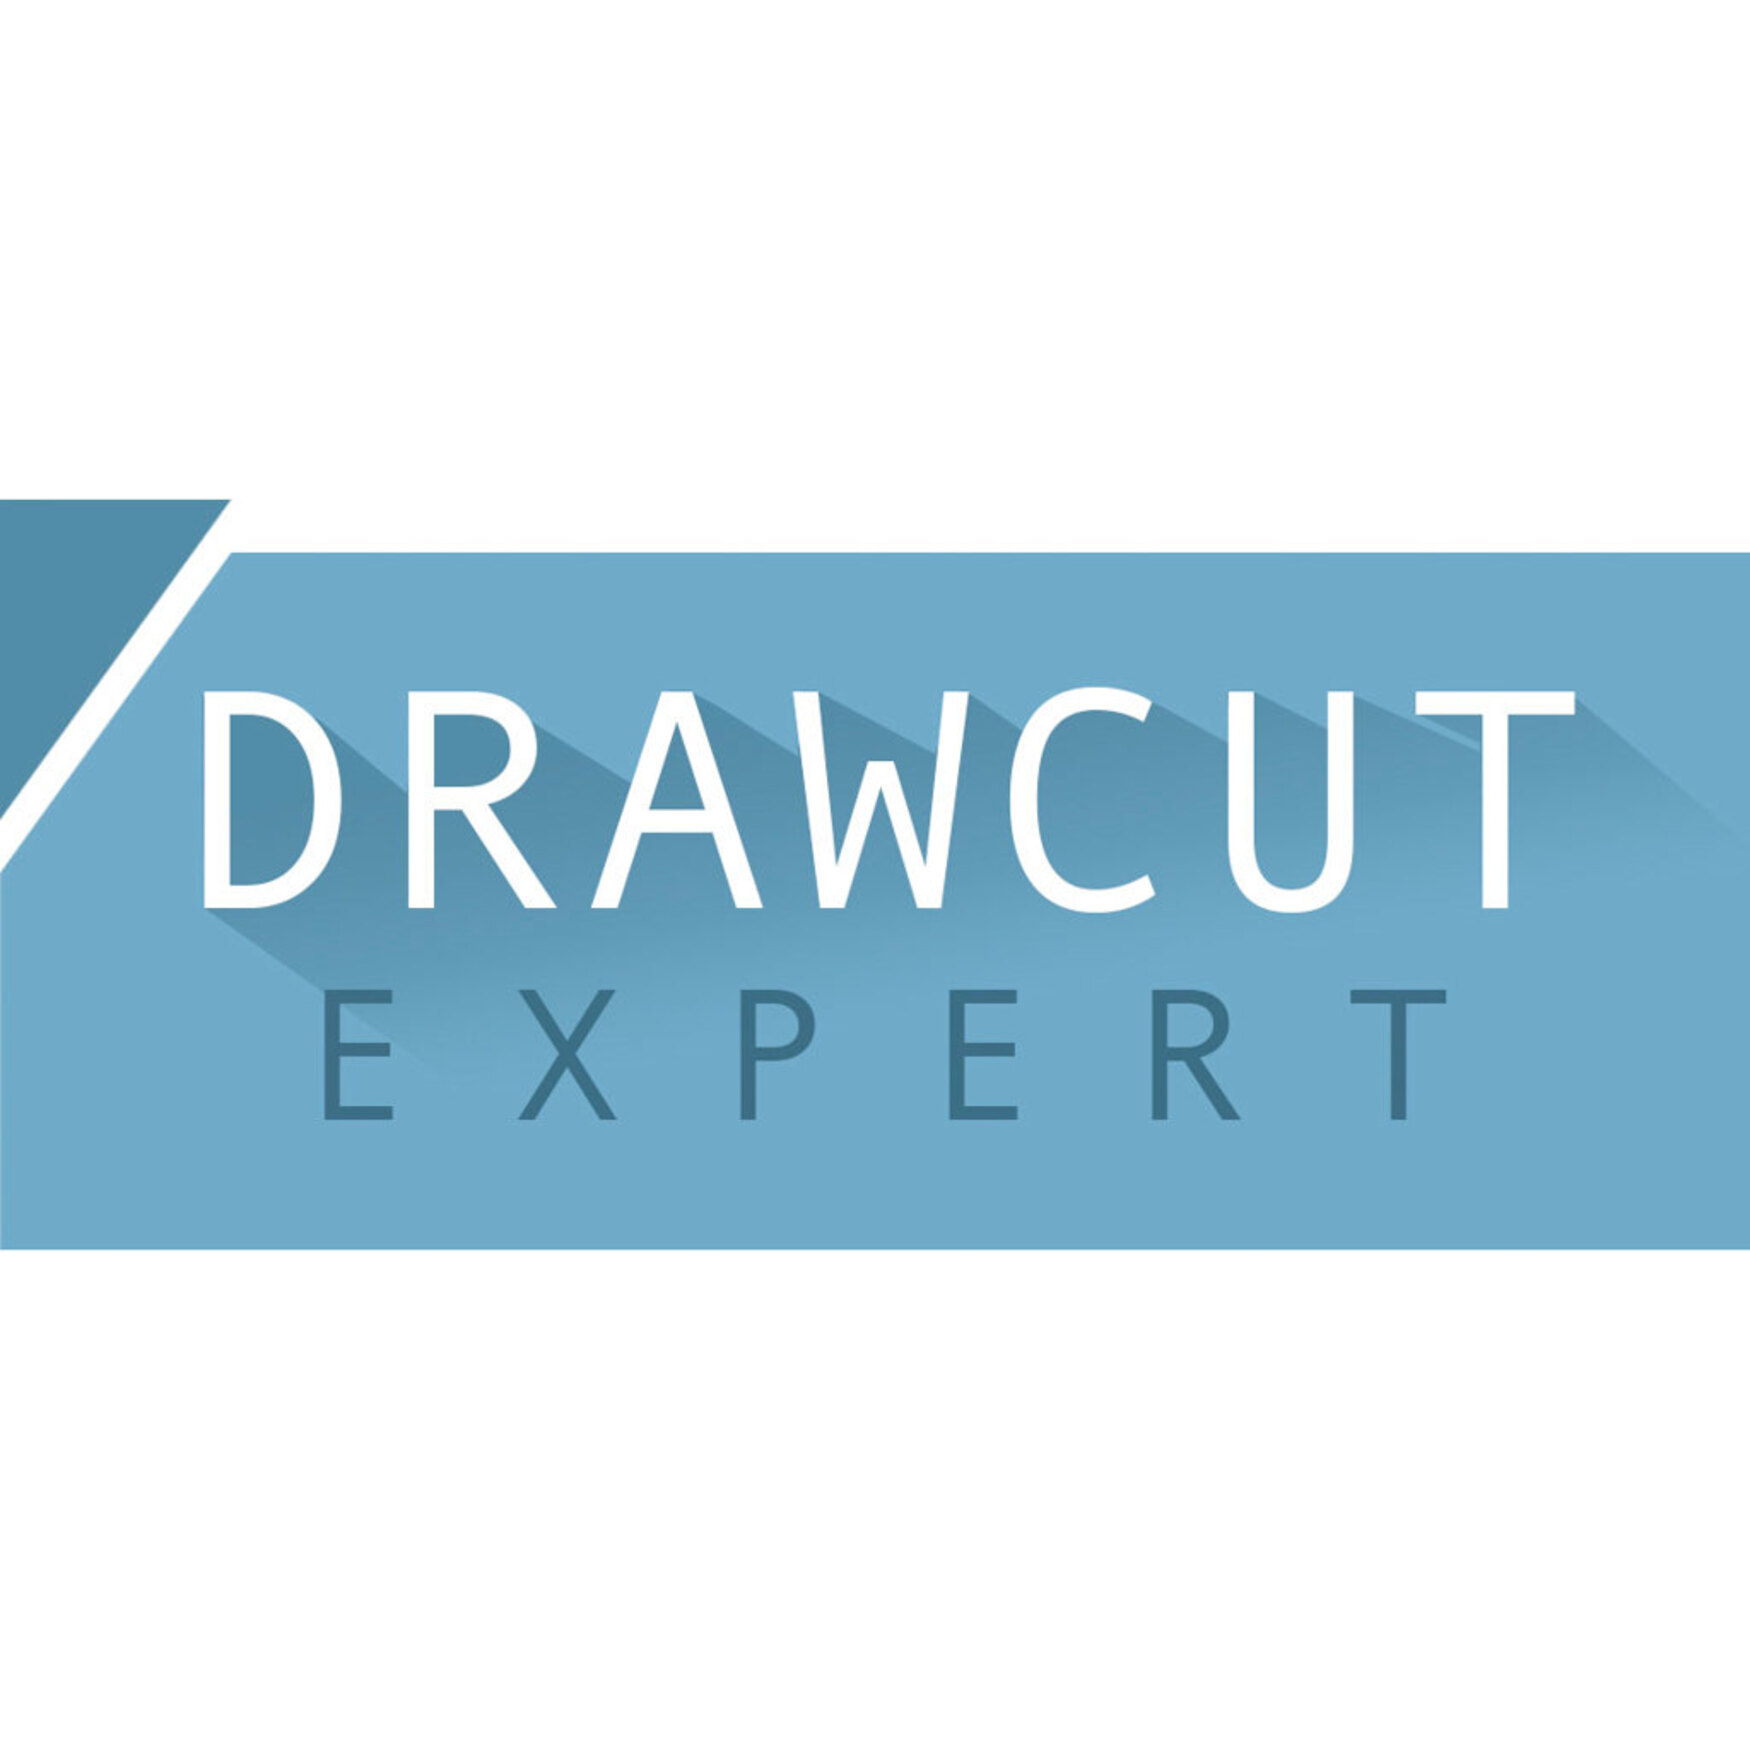 Upgrade from DrawCut LITE to DrawCut EXPERT